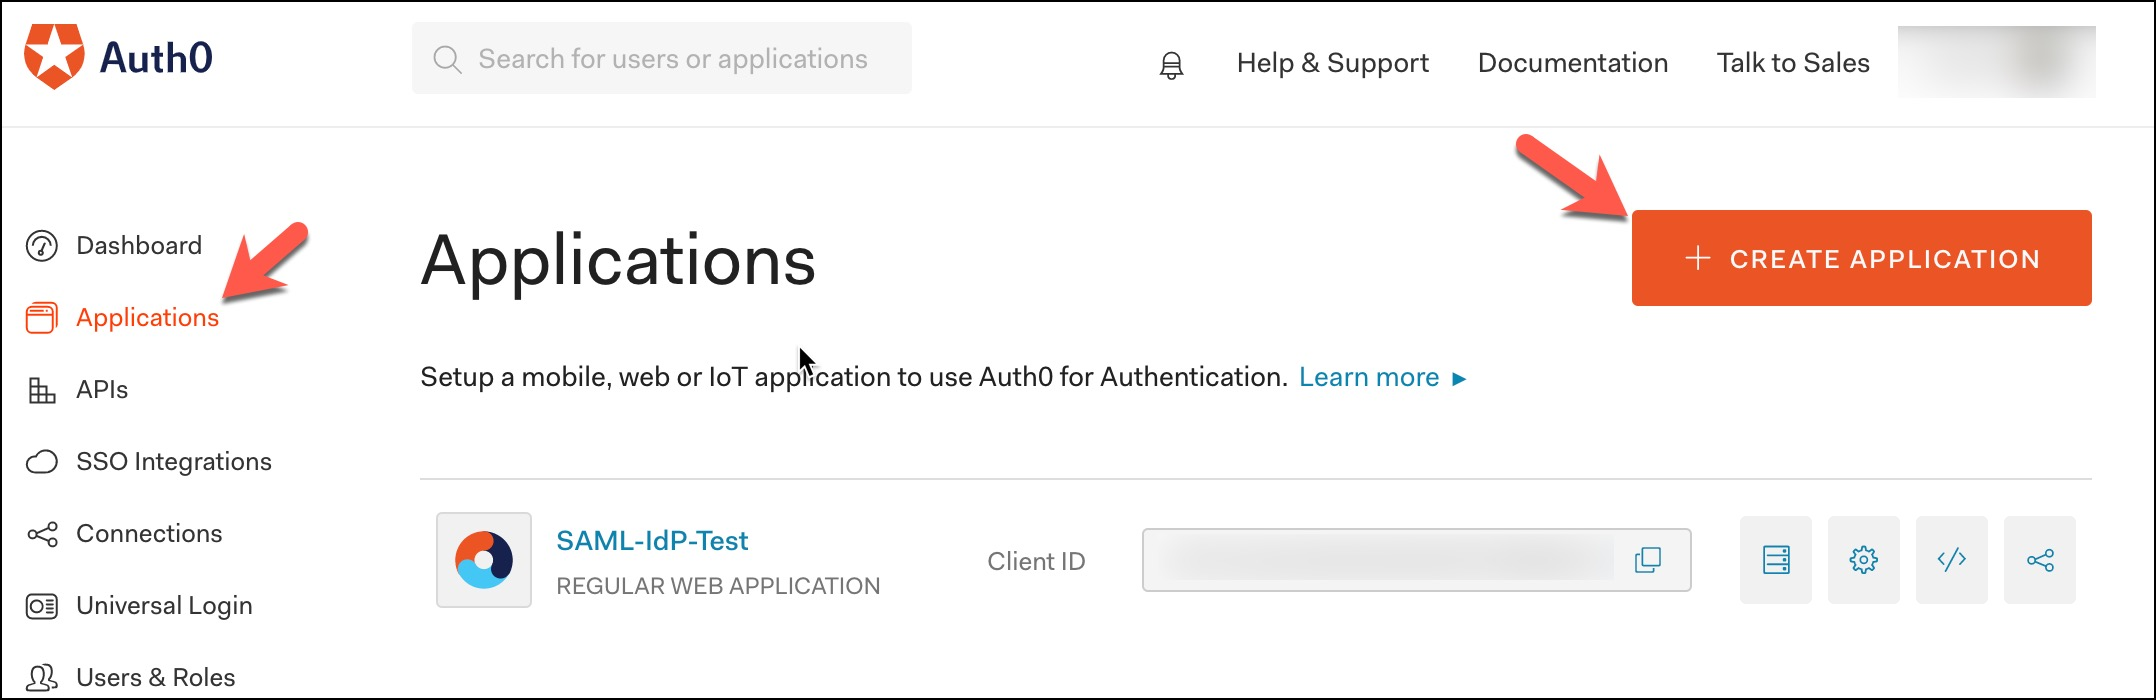 auth0-create-application-1